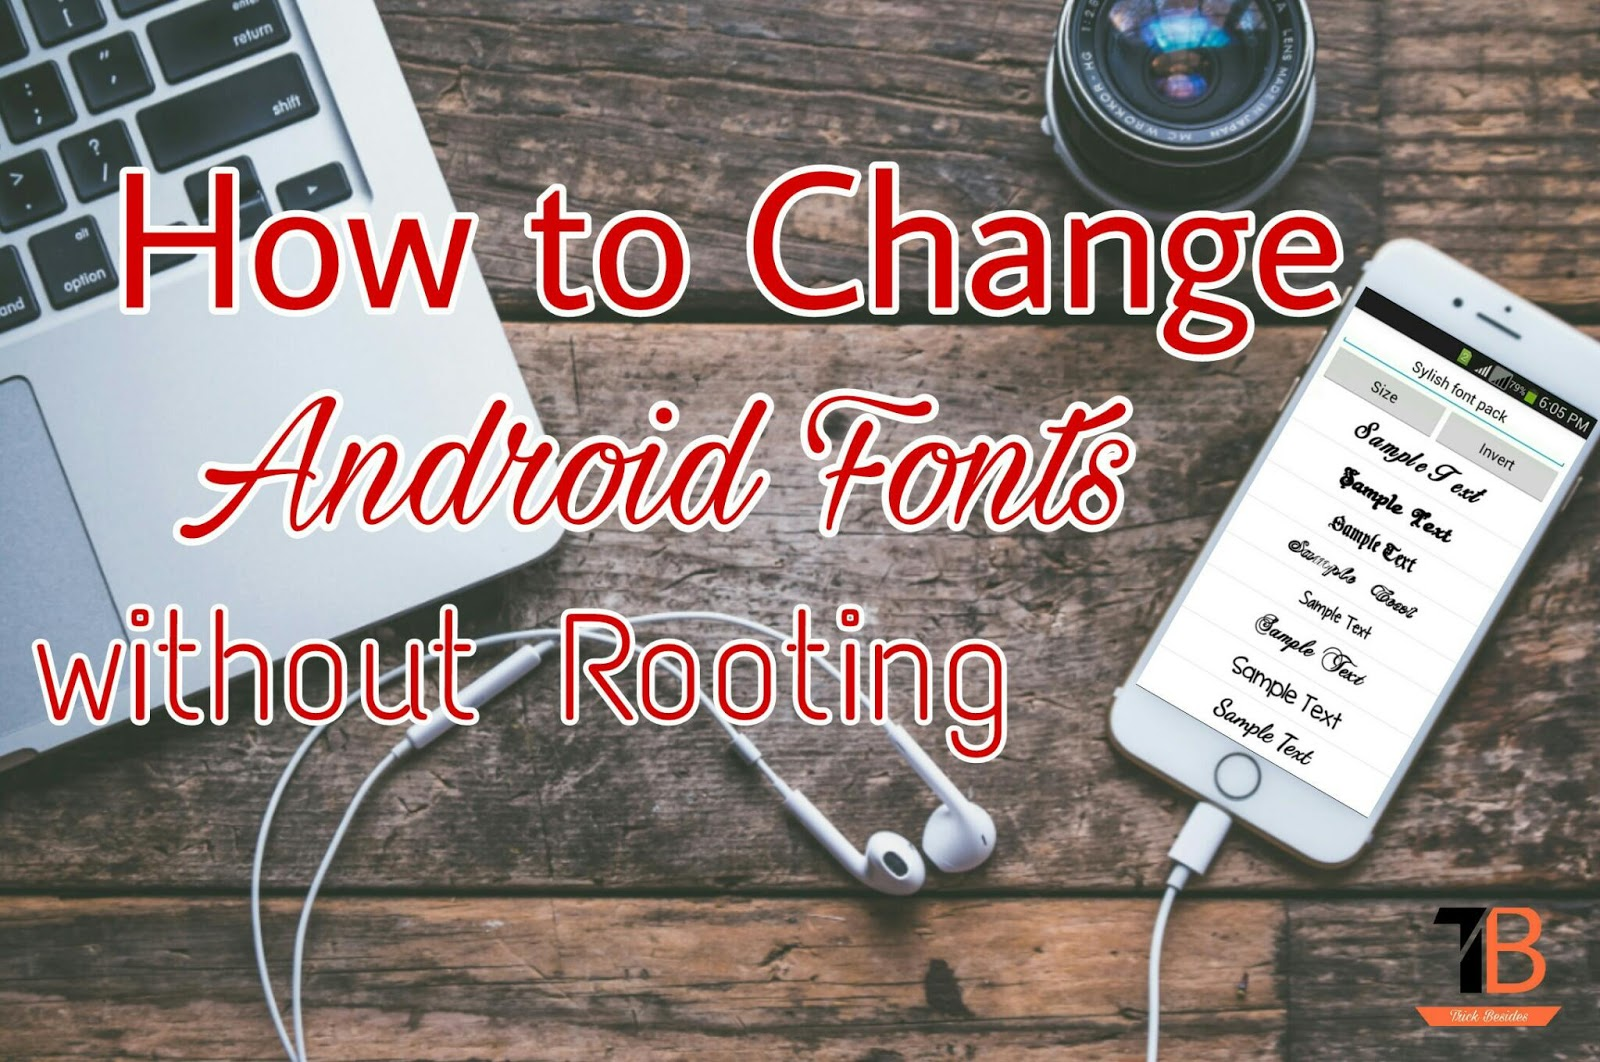 How to Change Android Fonts Easily without Rooting